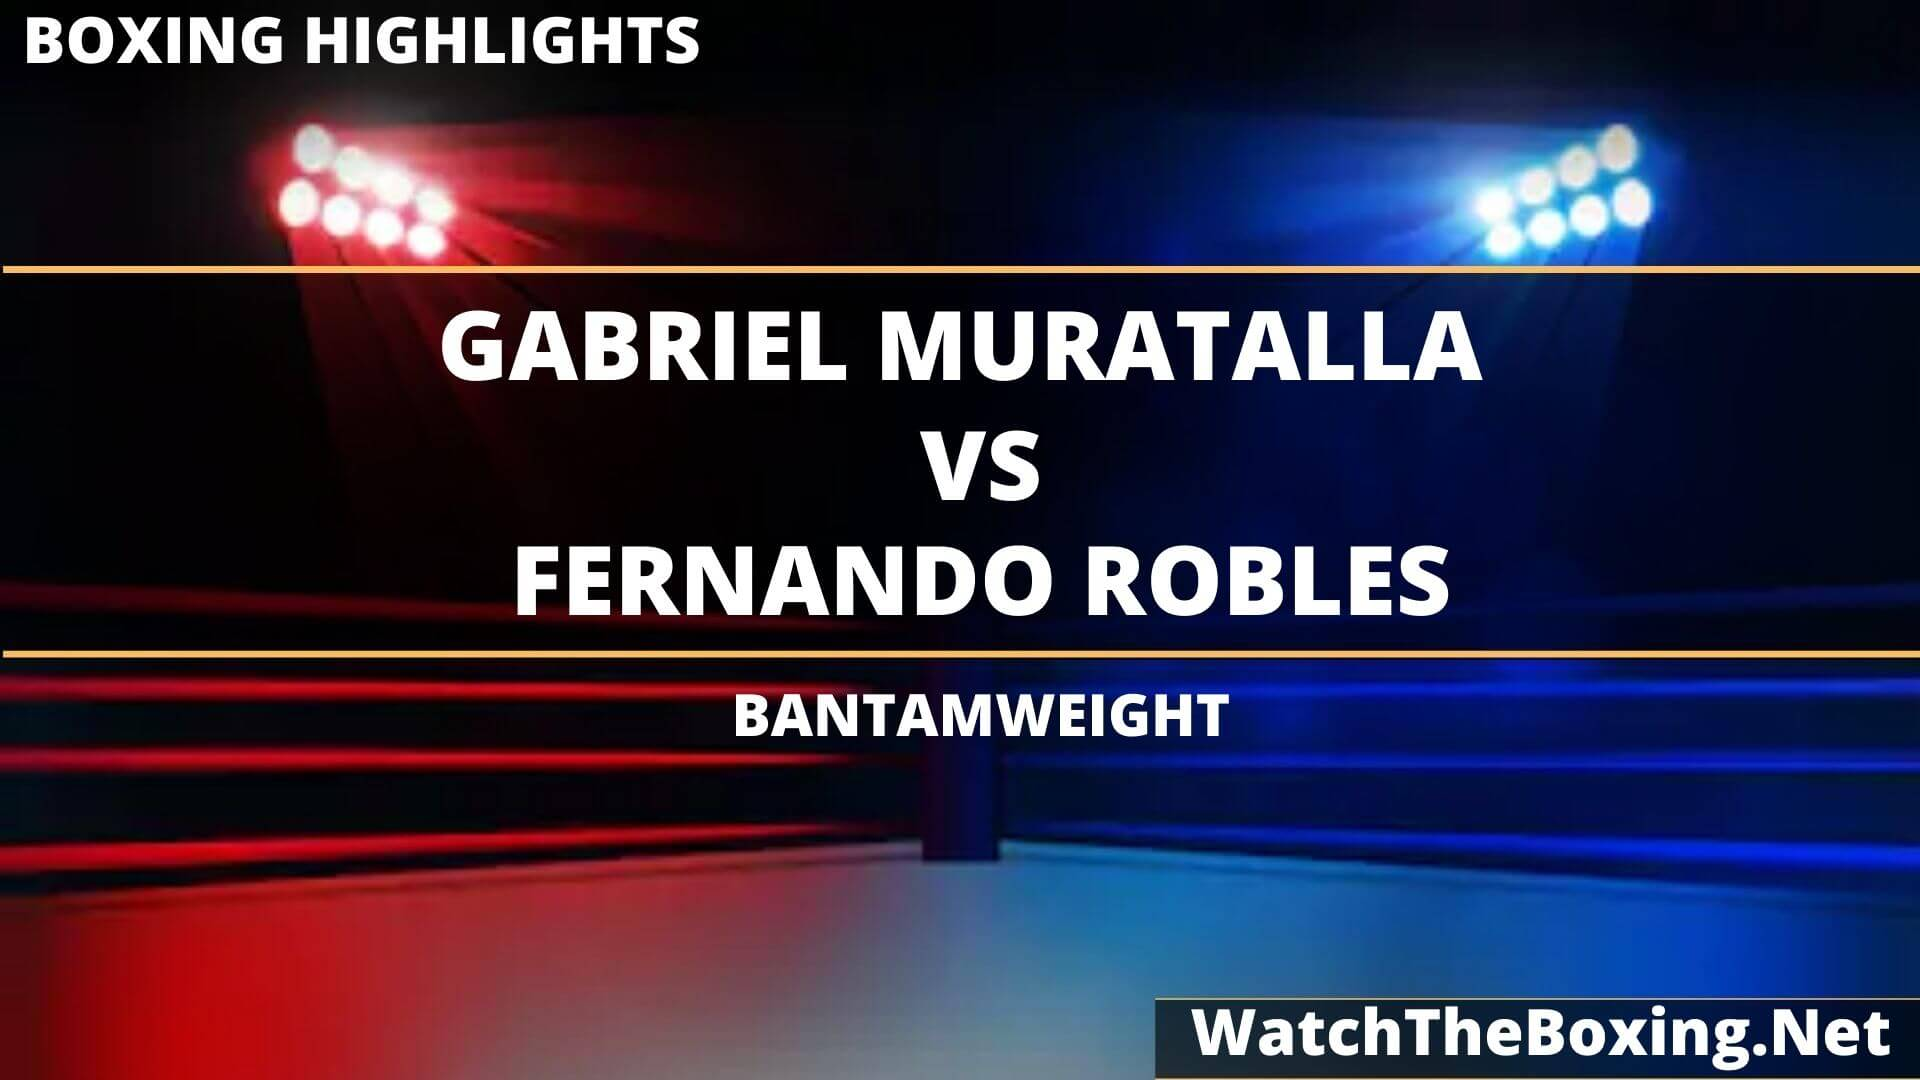 Gabriel Muratalla Vs Fernando Robles Highlights 2020 Bantamweight